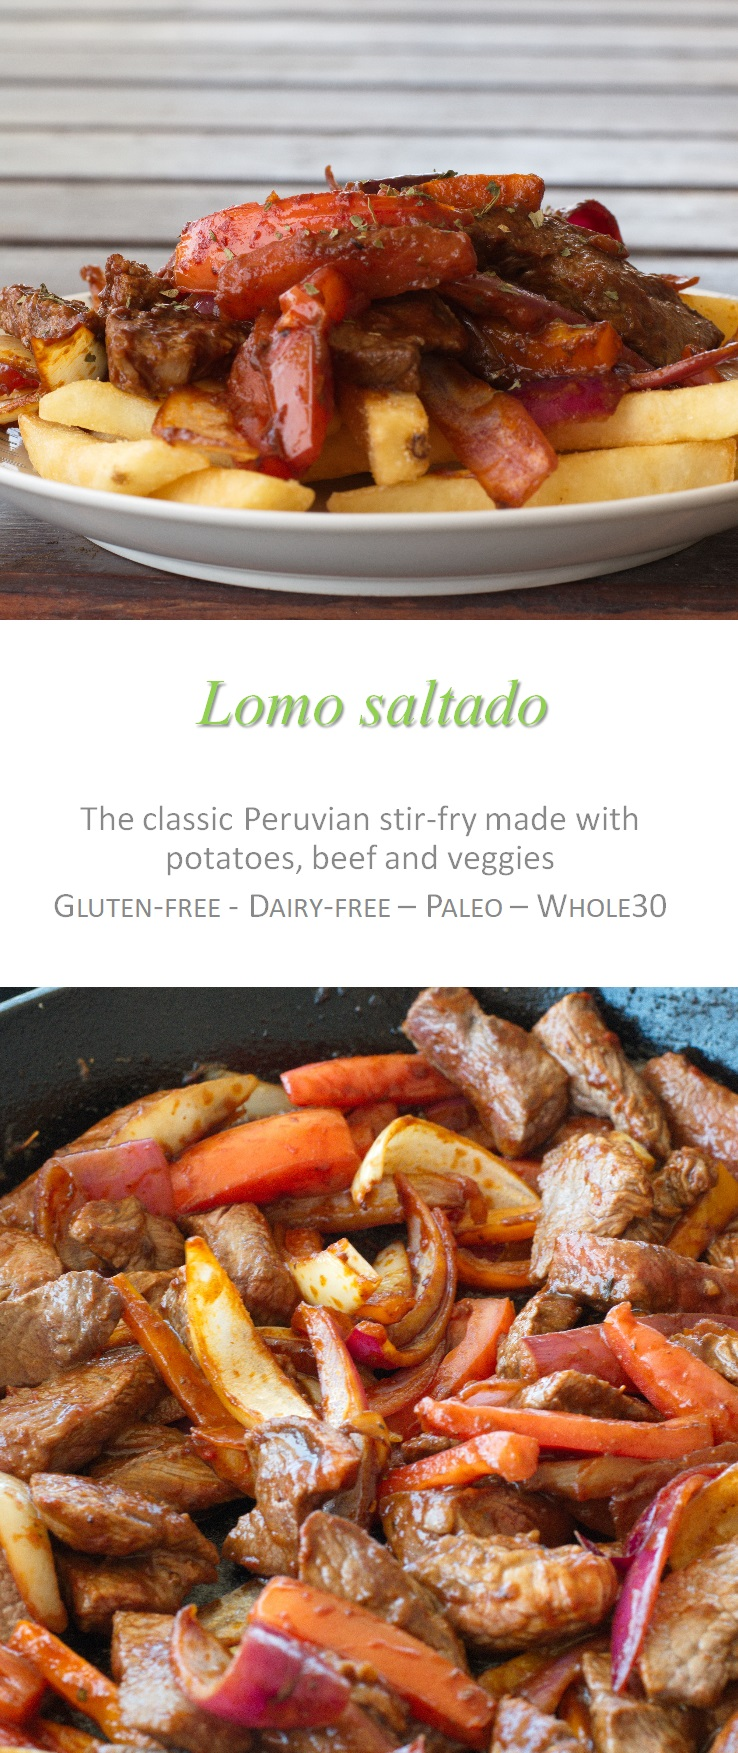 It's the classic Peruvian dish of steak and fries - but this lomo saltado is actually Whole30 compliant! #lomosaltado #peruvian #cookathome #paleo #whole30 #glutenfree #dairyfree